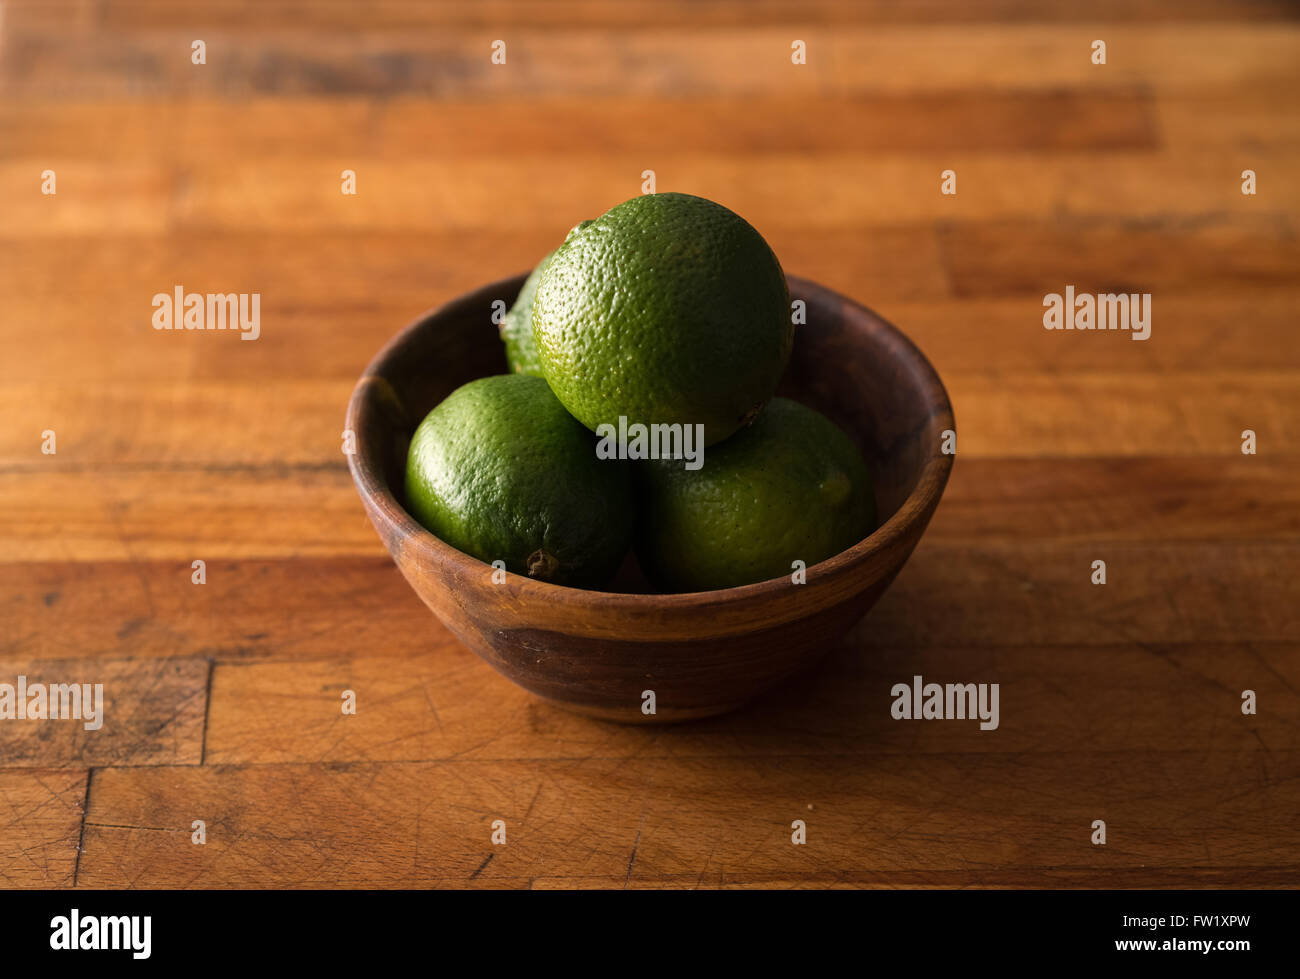 Raw whole limes in bowl on rustic wood - Stock Image